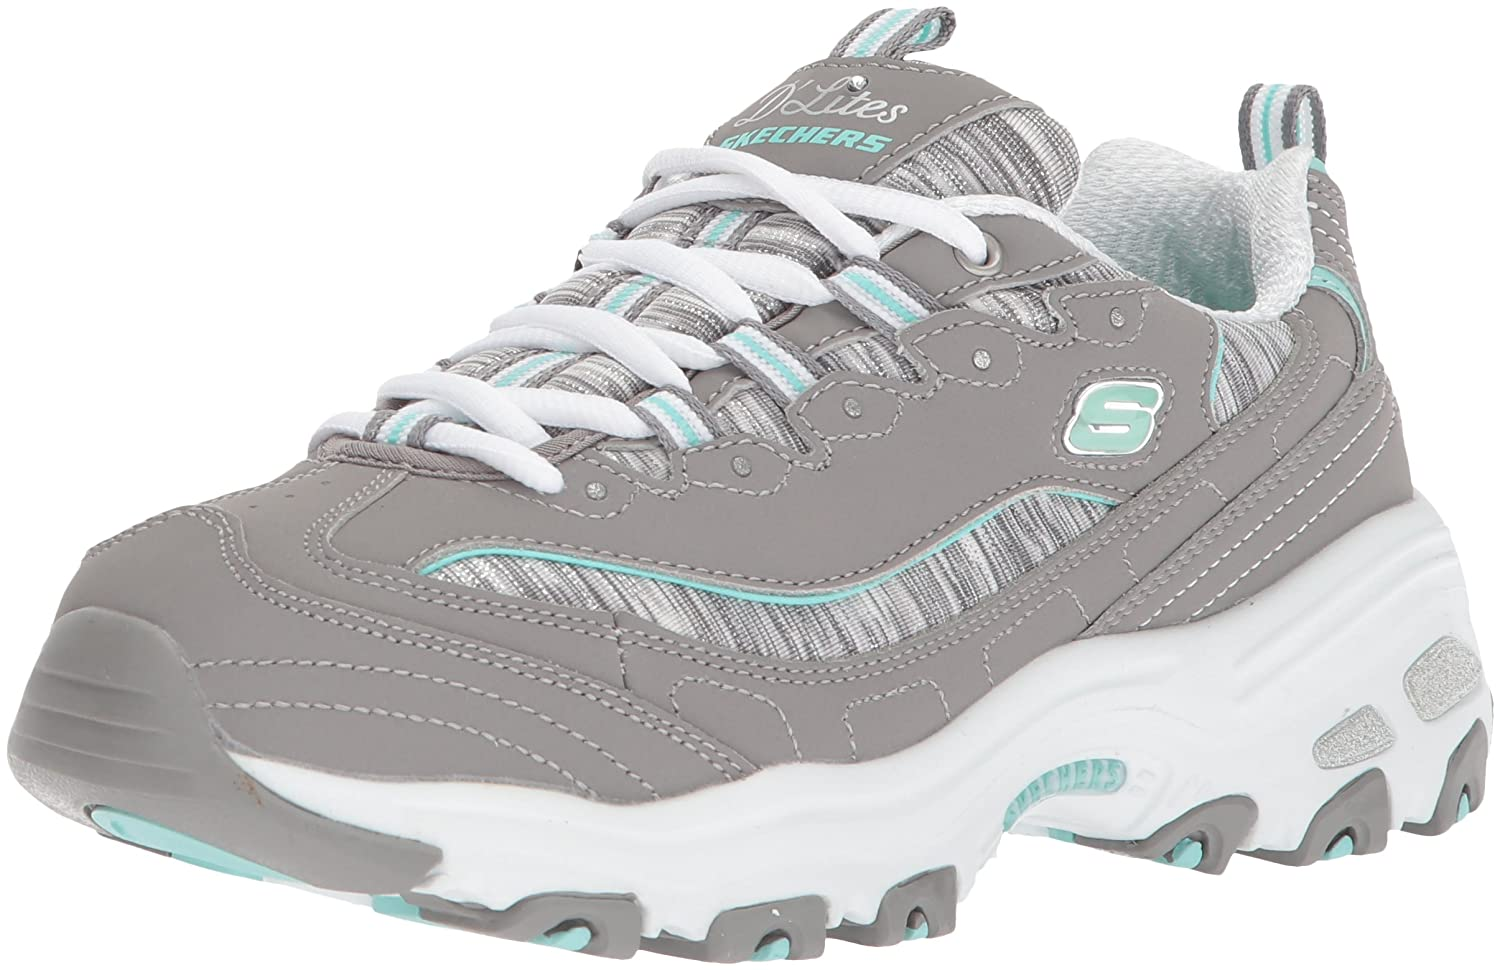 Skechers Women's DLites Interlude Sneaker B074FNTSJH 9 B(M) US|Gray Mint